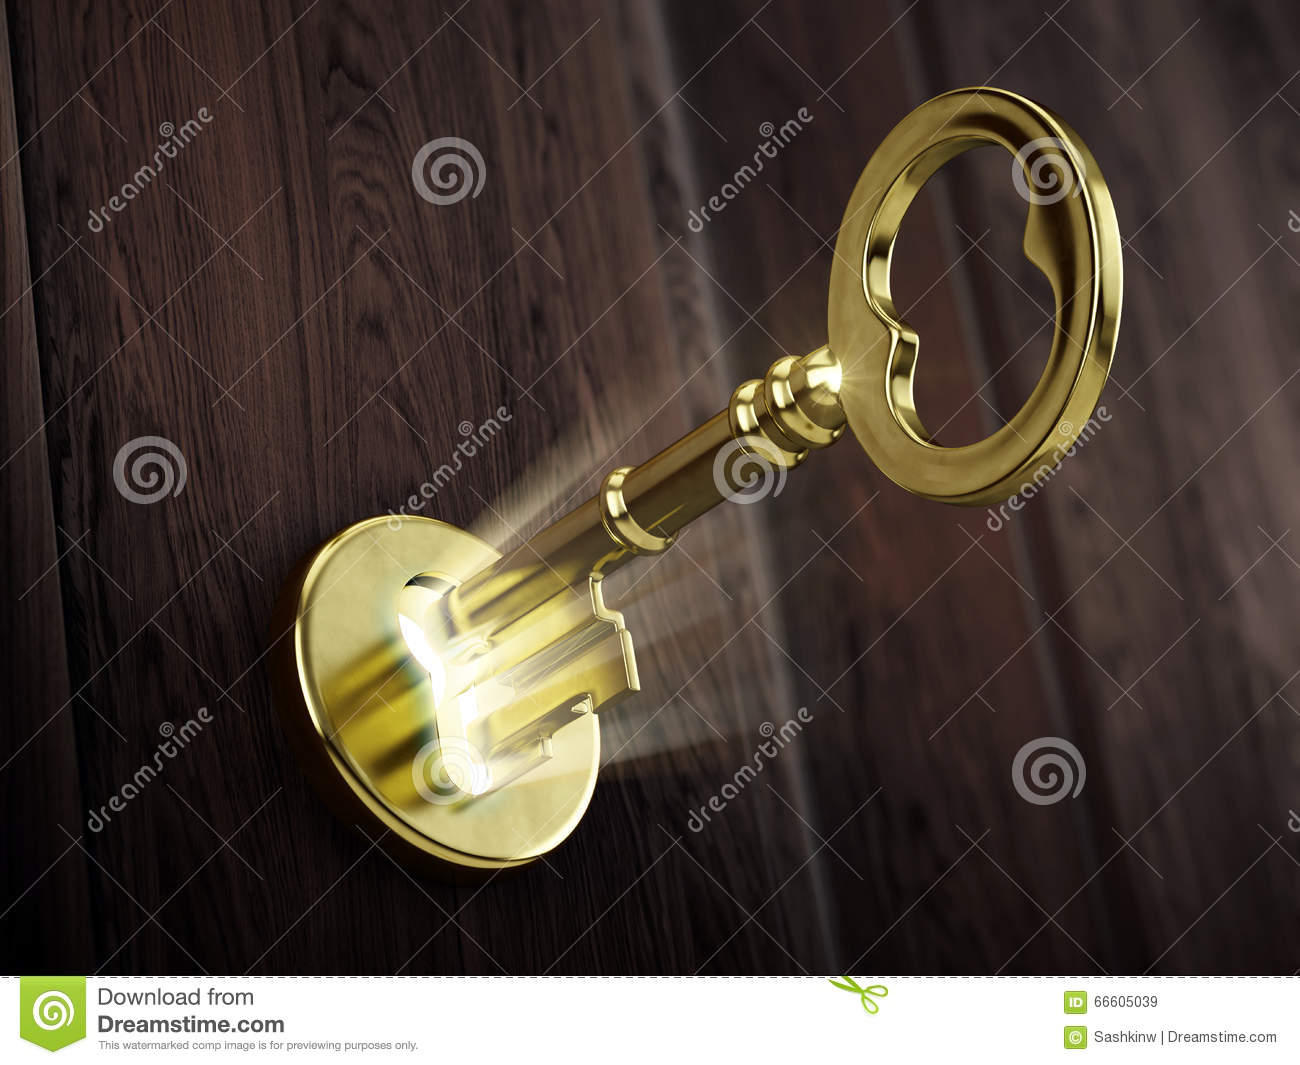 With golden key 3d rendering plan concept with golden key 3d rendering - Golden Key Moving In Keyhole Royalty Free Stock Images